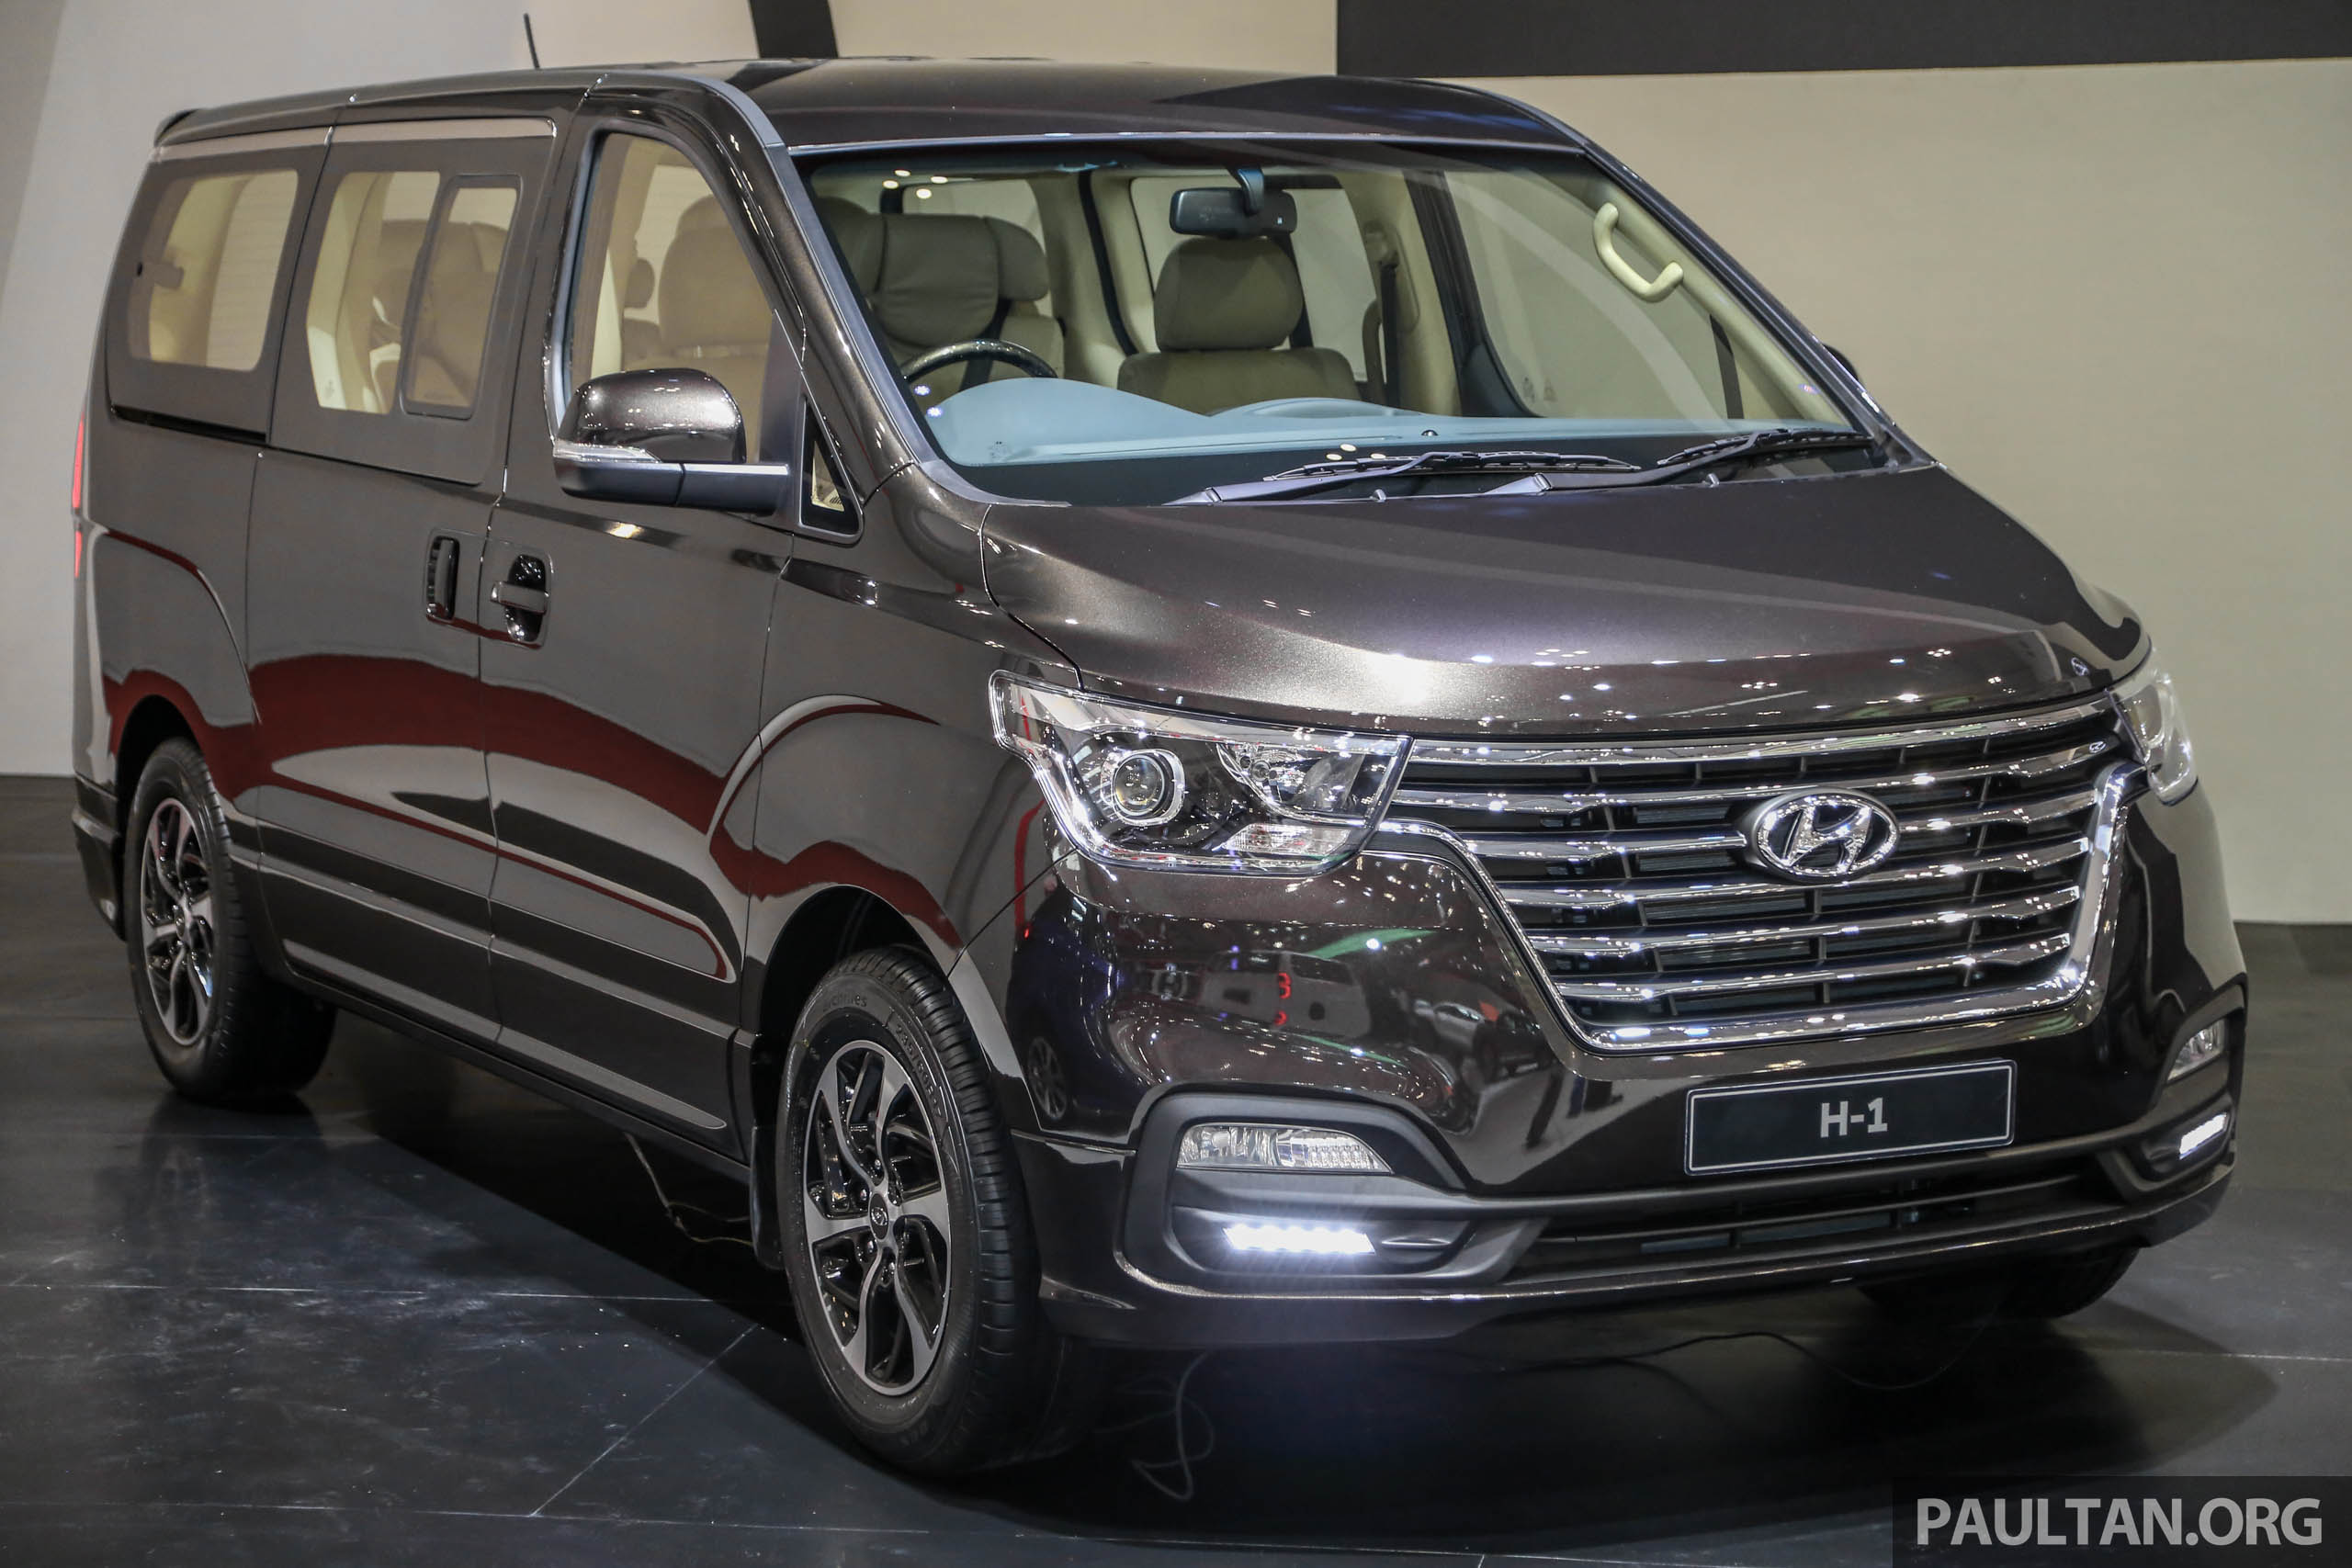 hyundai-h-1-facelift-royale-ext-1.jpg